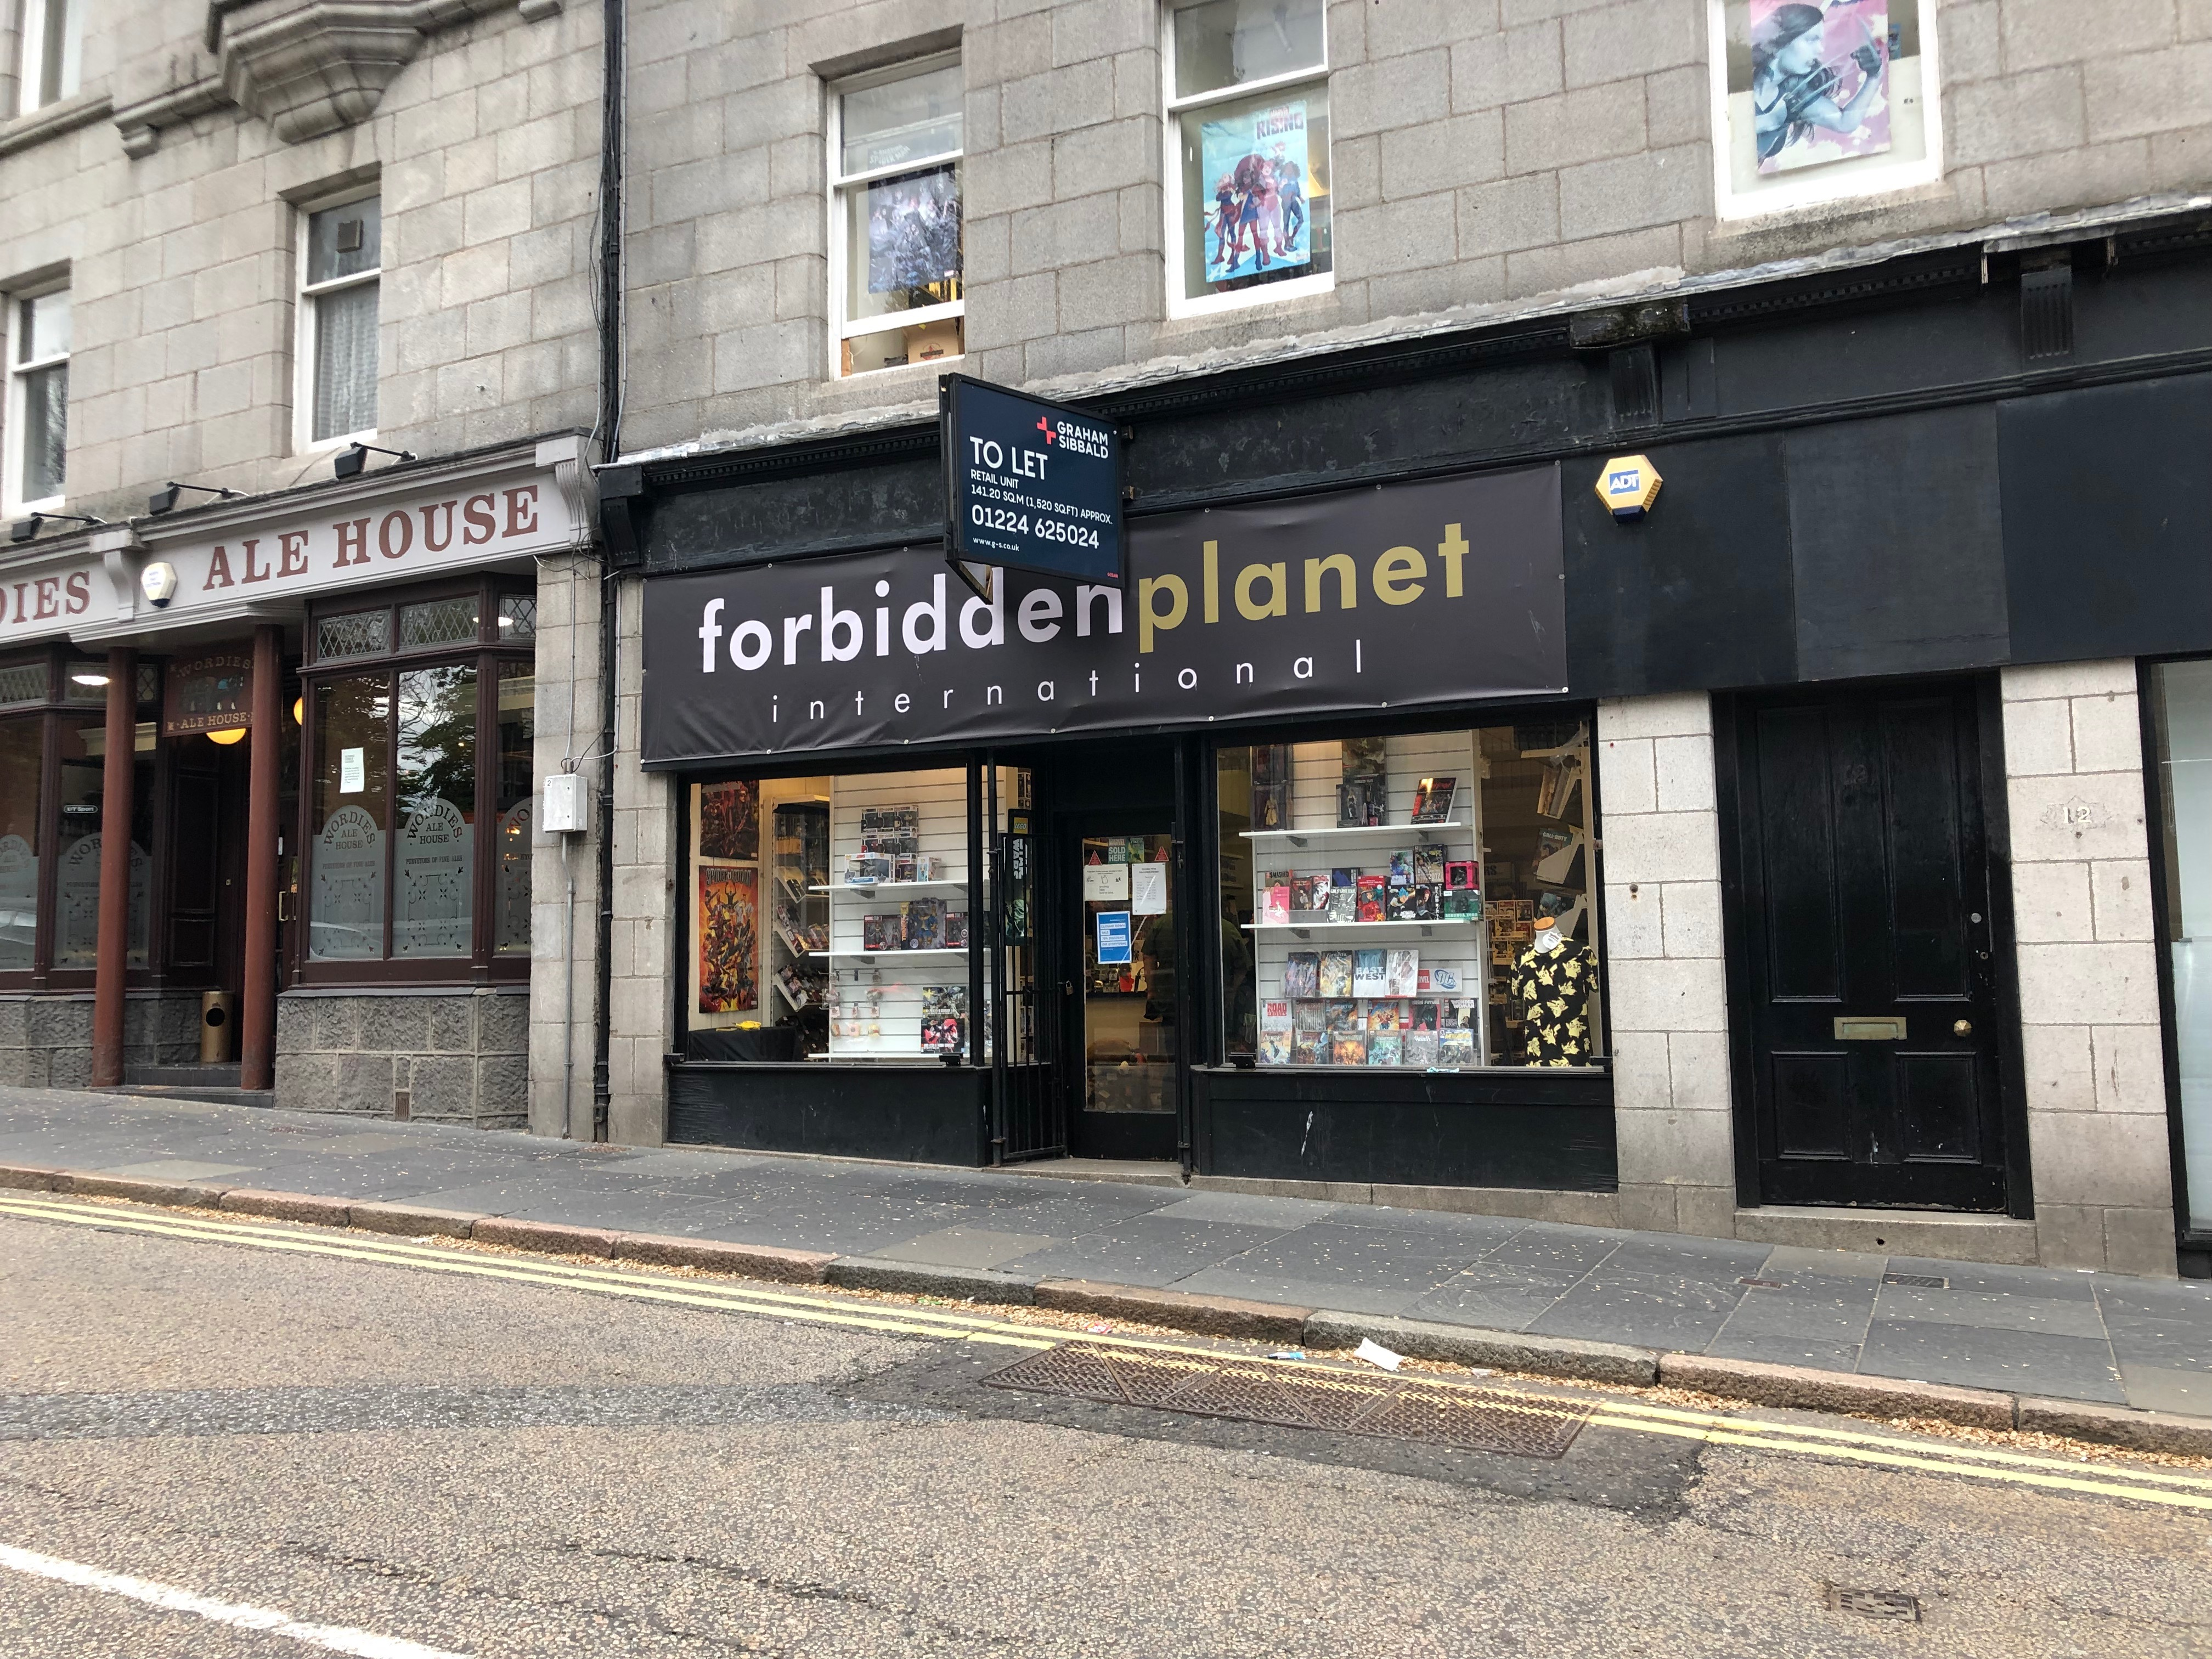 Forbidden Planet has announced it will close its doors for the final time